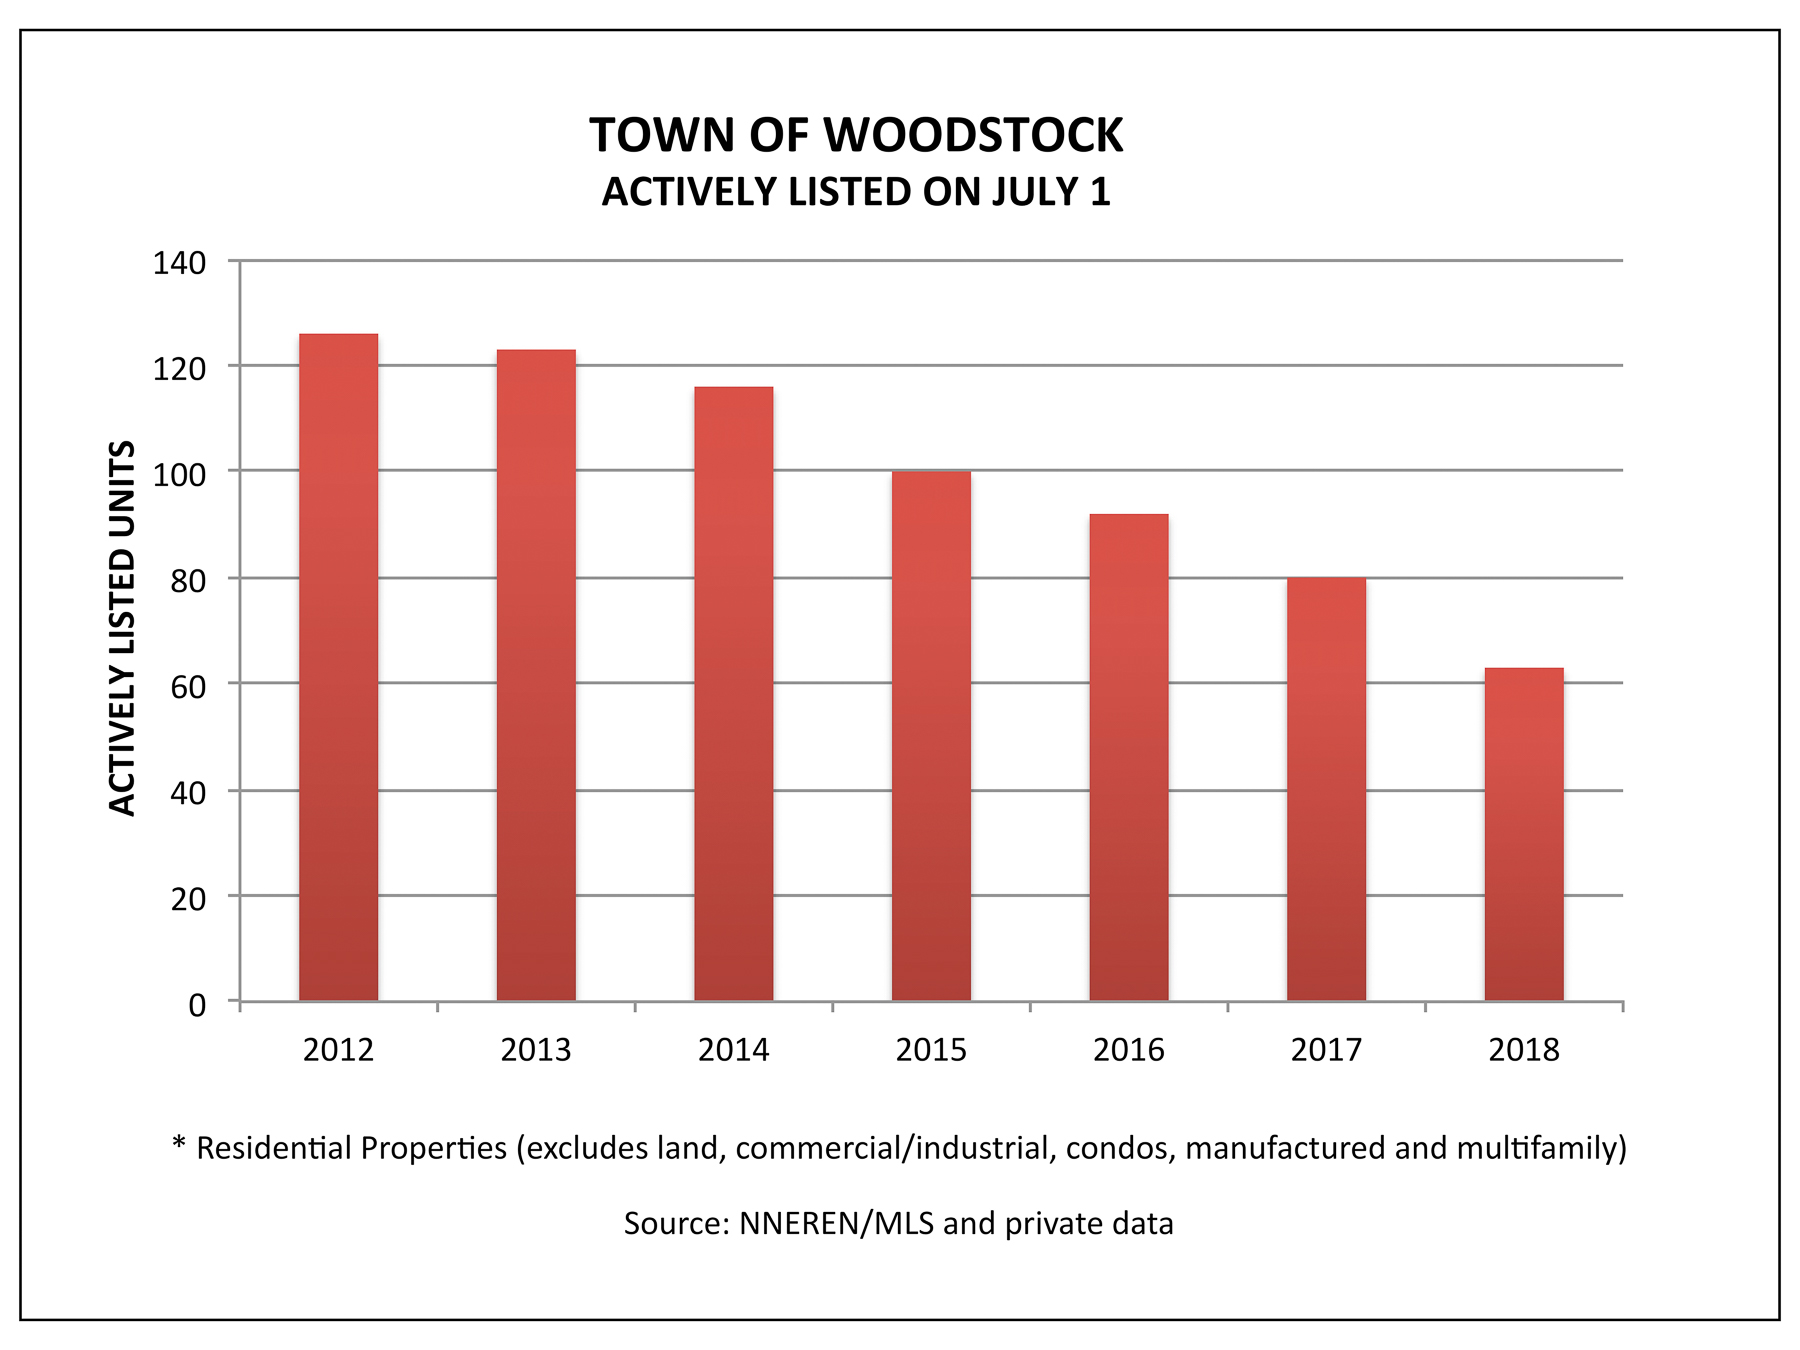 Woodstock VT Real Estate - Actively Listed on July 1